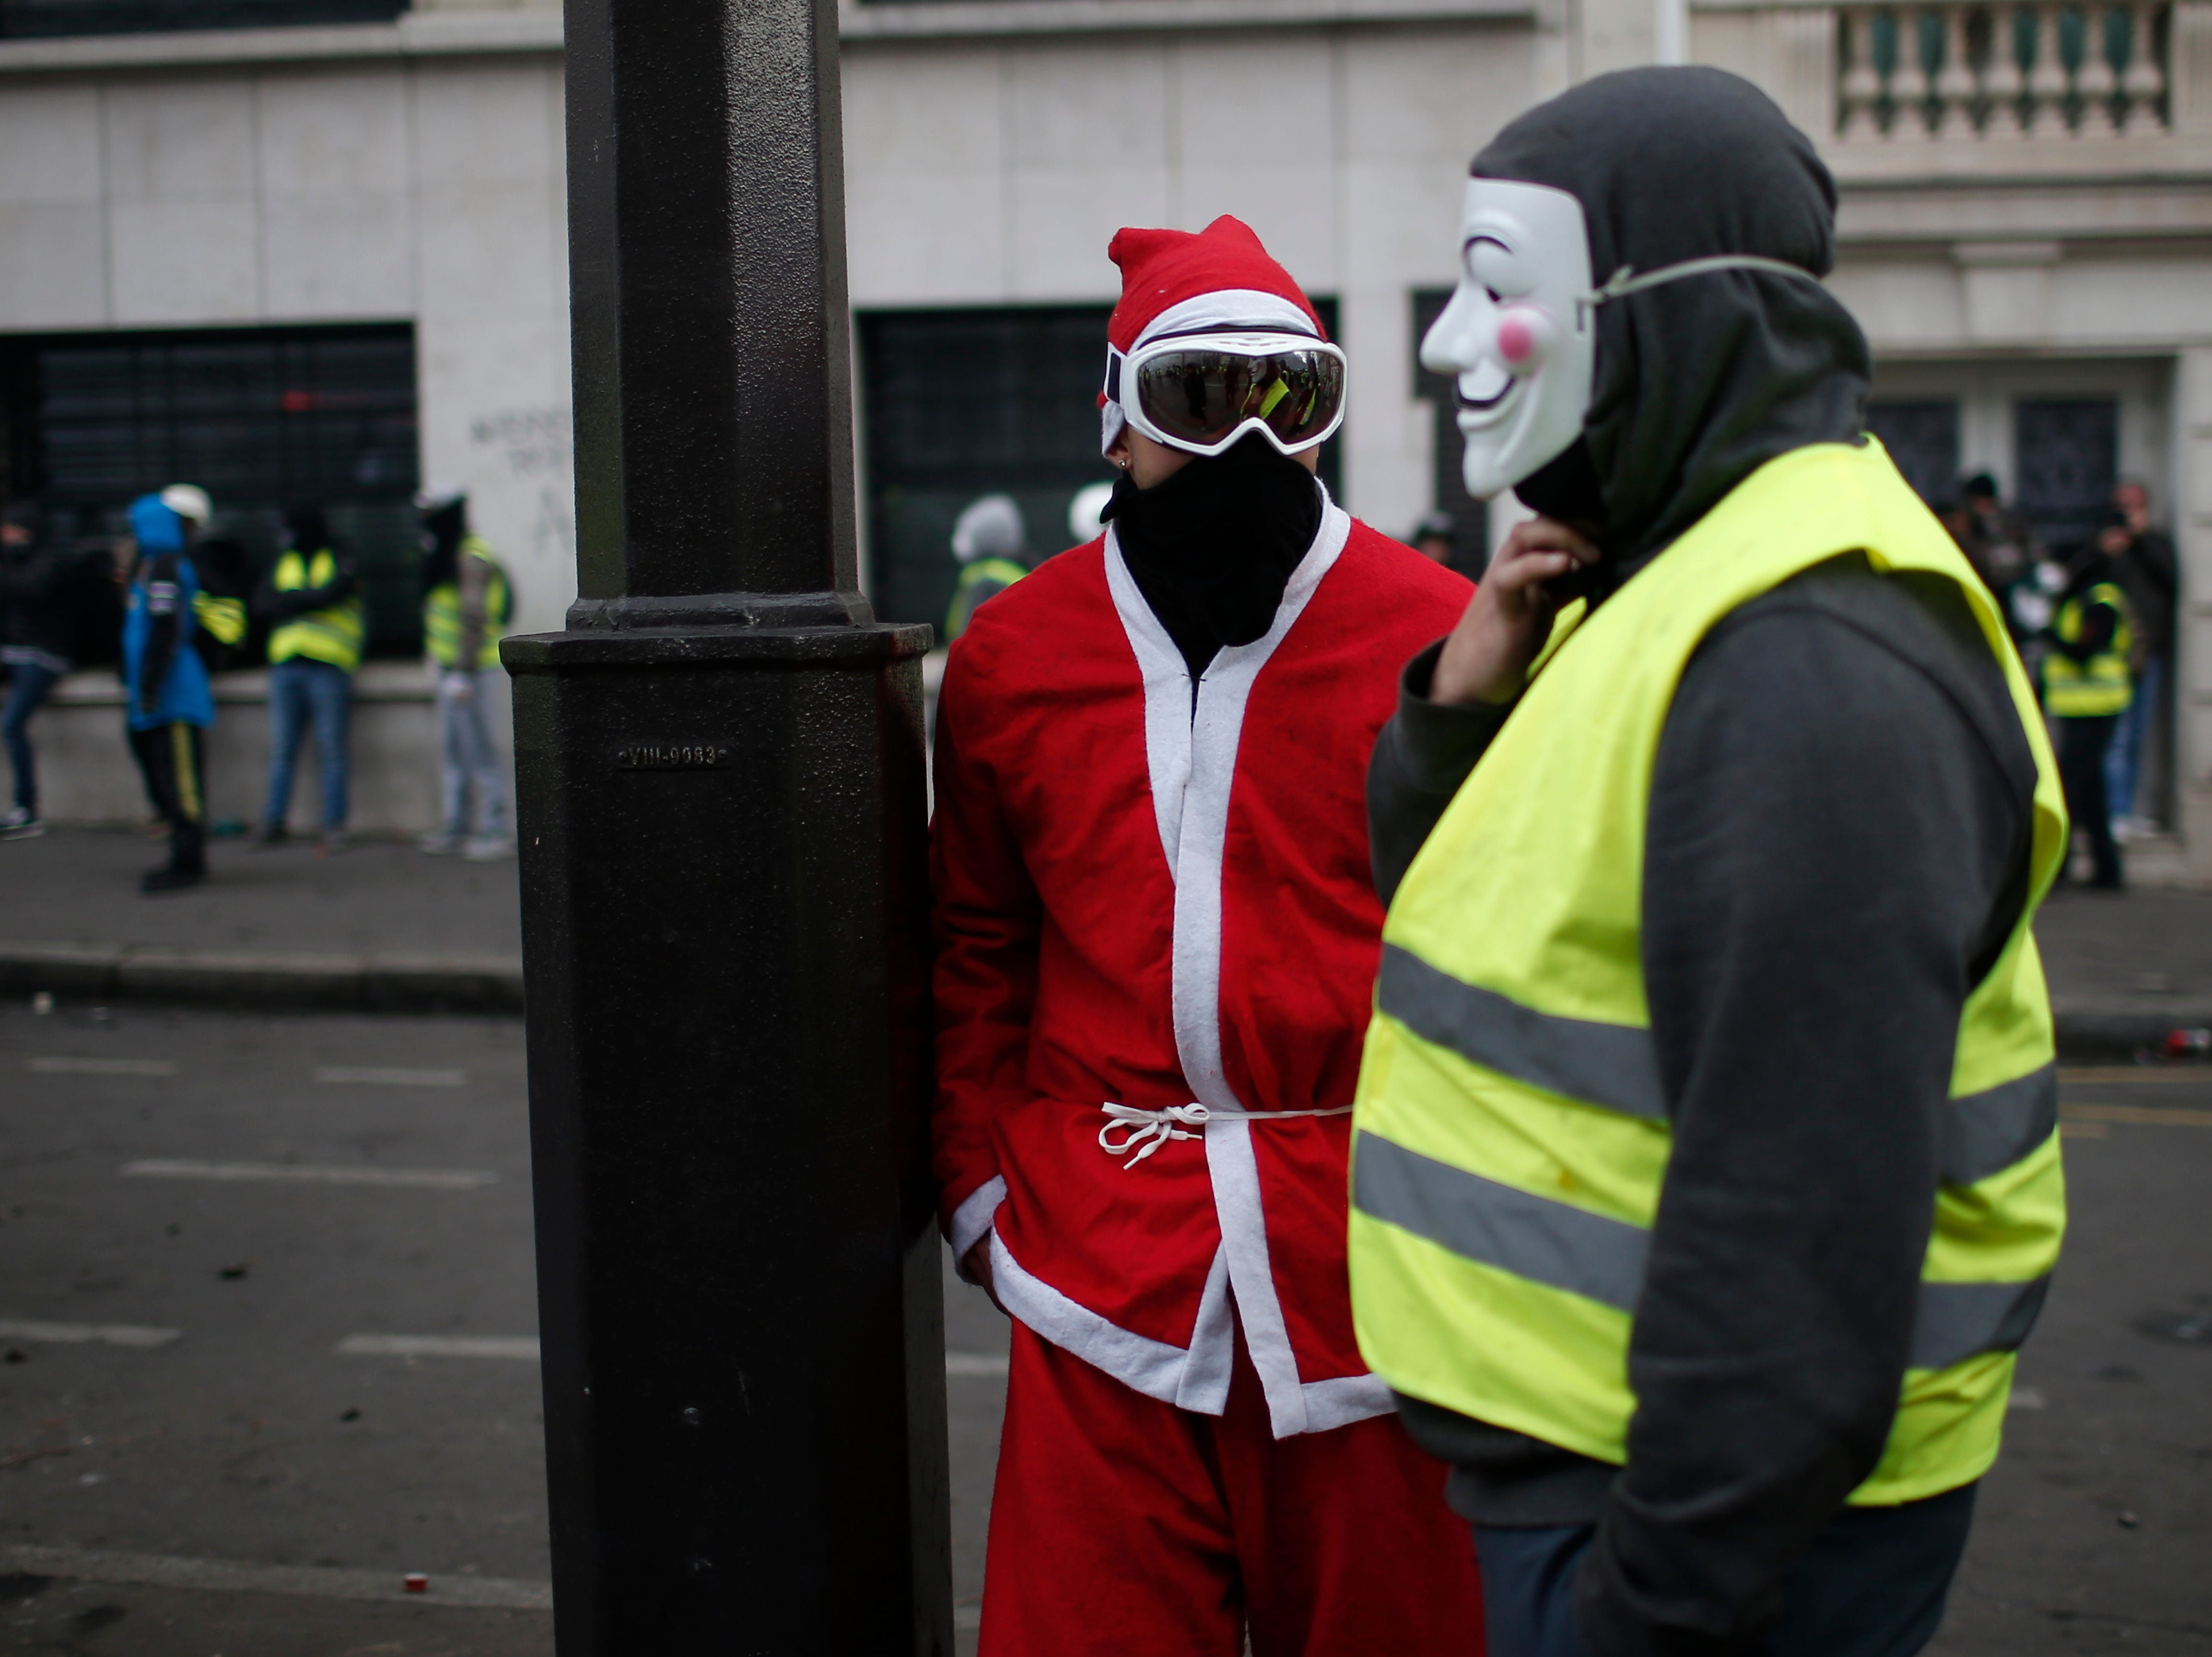 Demonstrators, one dressed like a Santa Claus, talk during clashes Saturday, Dec. 8, 2018, in Paris. Crowds of yellow-vested protesters angry at President Emmanuel Macron and France's high taxes tried to converge on the presidential palace Saturday, some scuffling with police firing tear gas, amid exceptional security measures aimed at preventing a repeat of last week's rioting.